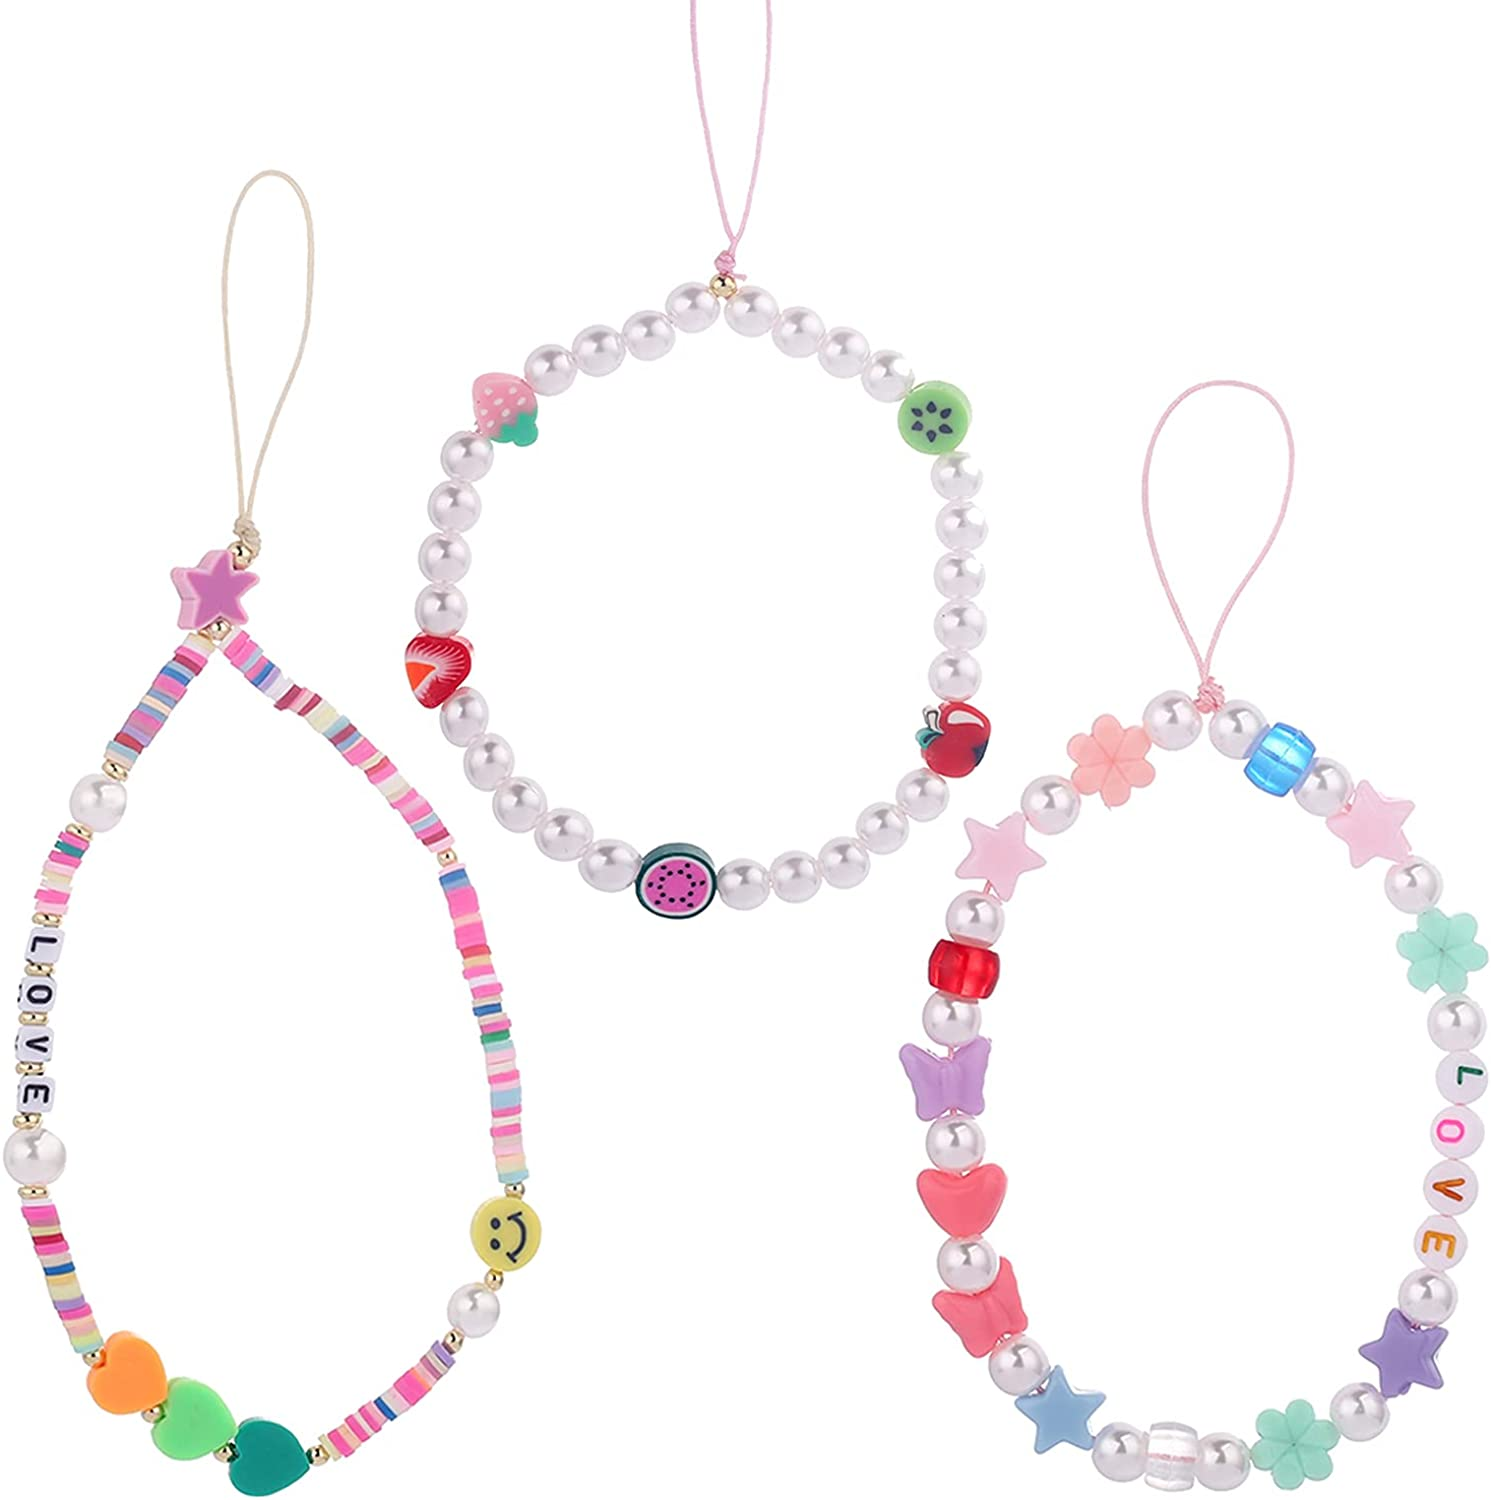 Beaded Phone Super popular specialty store Fixed price for sale Charm Strap Y2K Decoration Lanyard Sm Rainbow